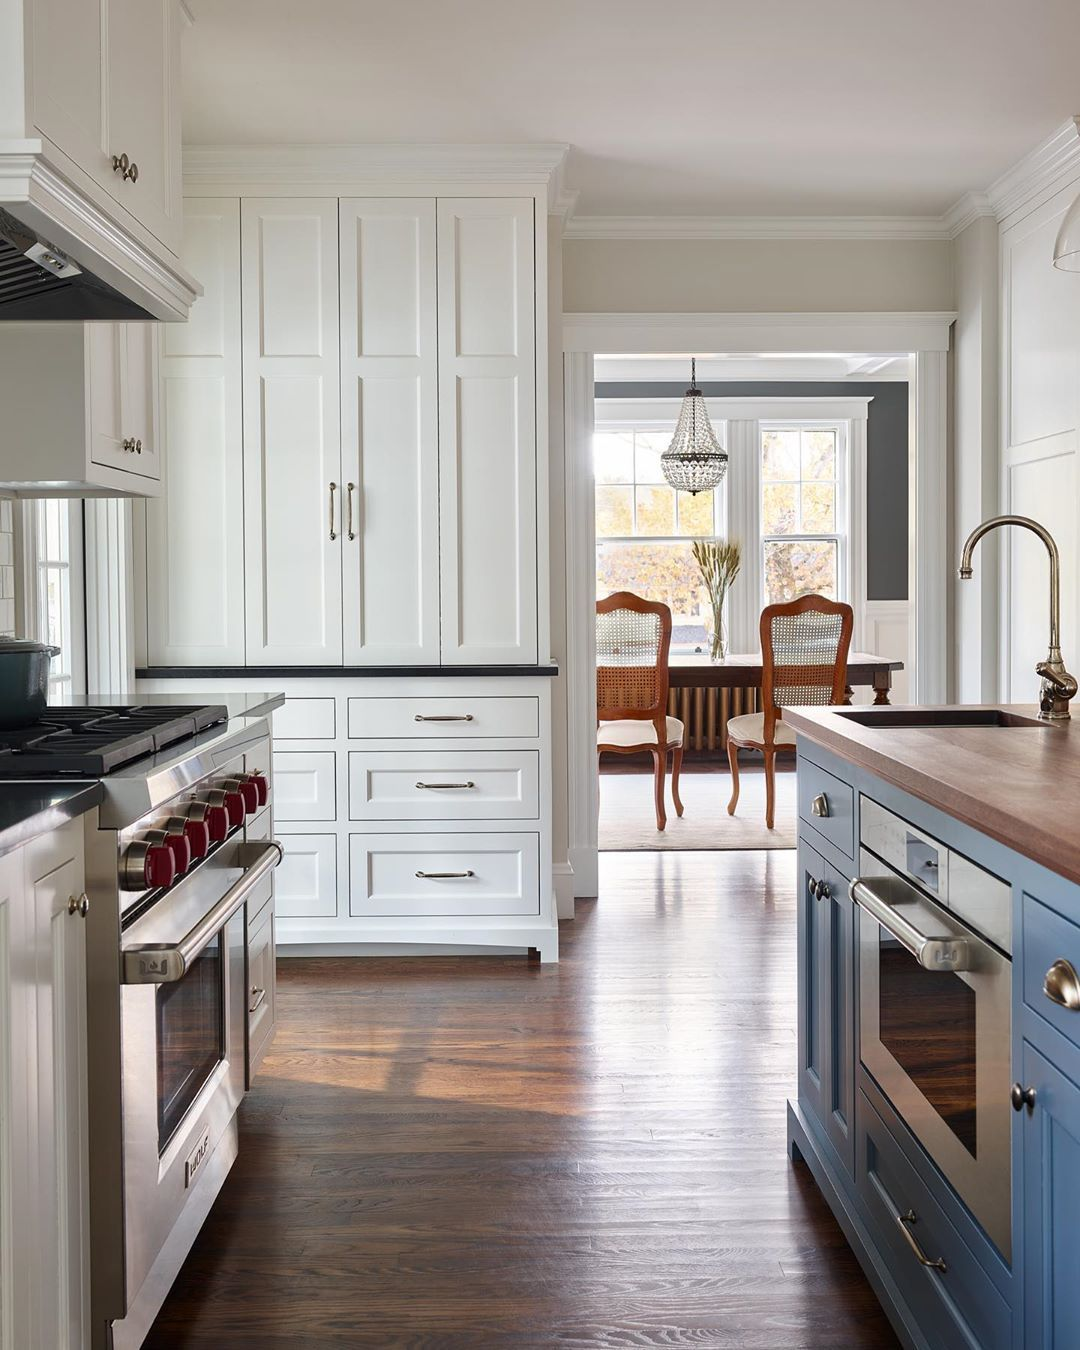 Block Brothers Custom Cabinets On Instagram Chantilly Lace Downpipe Soapstone And Wa In 2020 Blue Kitchen Island Butcher Block Island Kitchen Blue Kitchen Designs